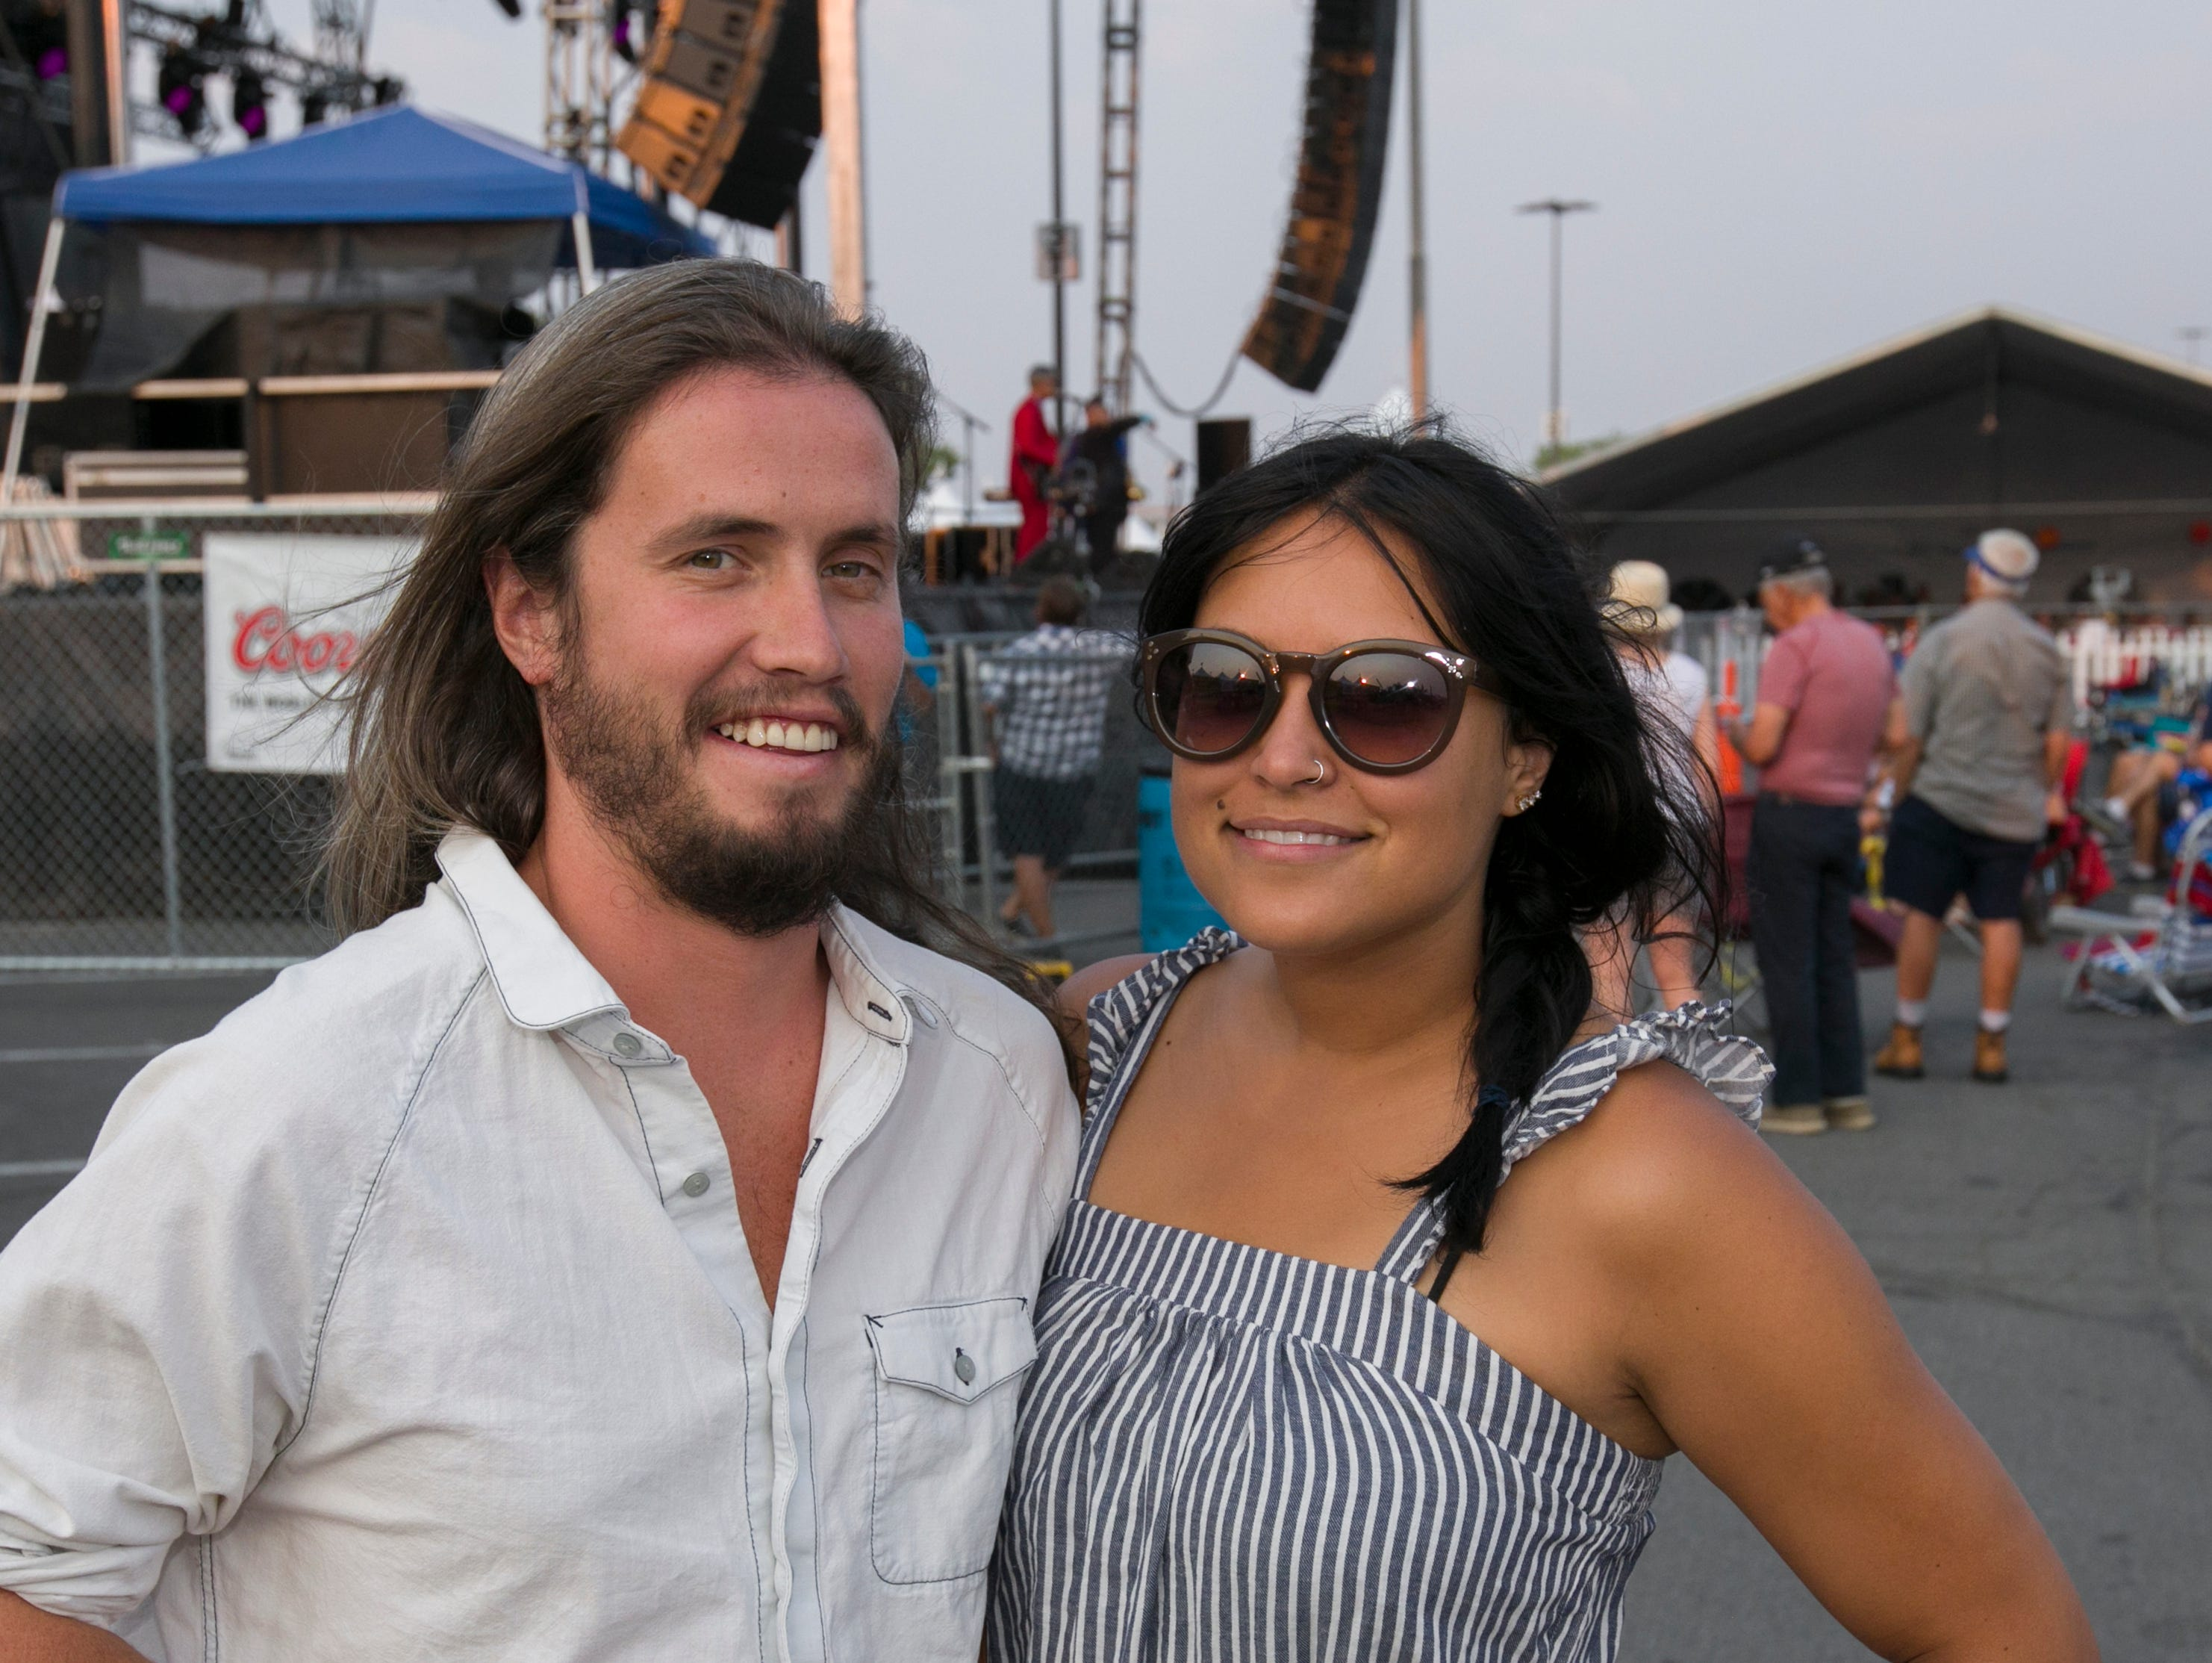 Collin and Alissin during the Hot August Nights Eddie Money concert at the Grand Sierra Resort in Reno on Thursday, August 9, 2018.